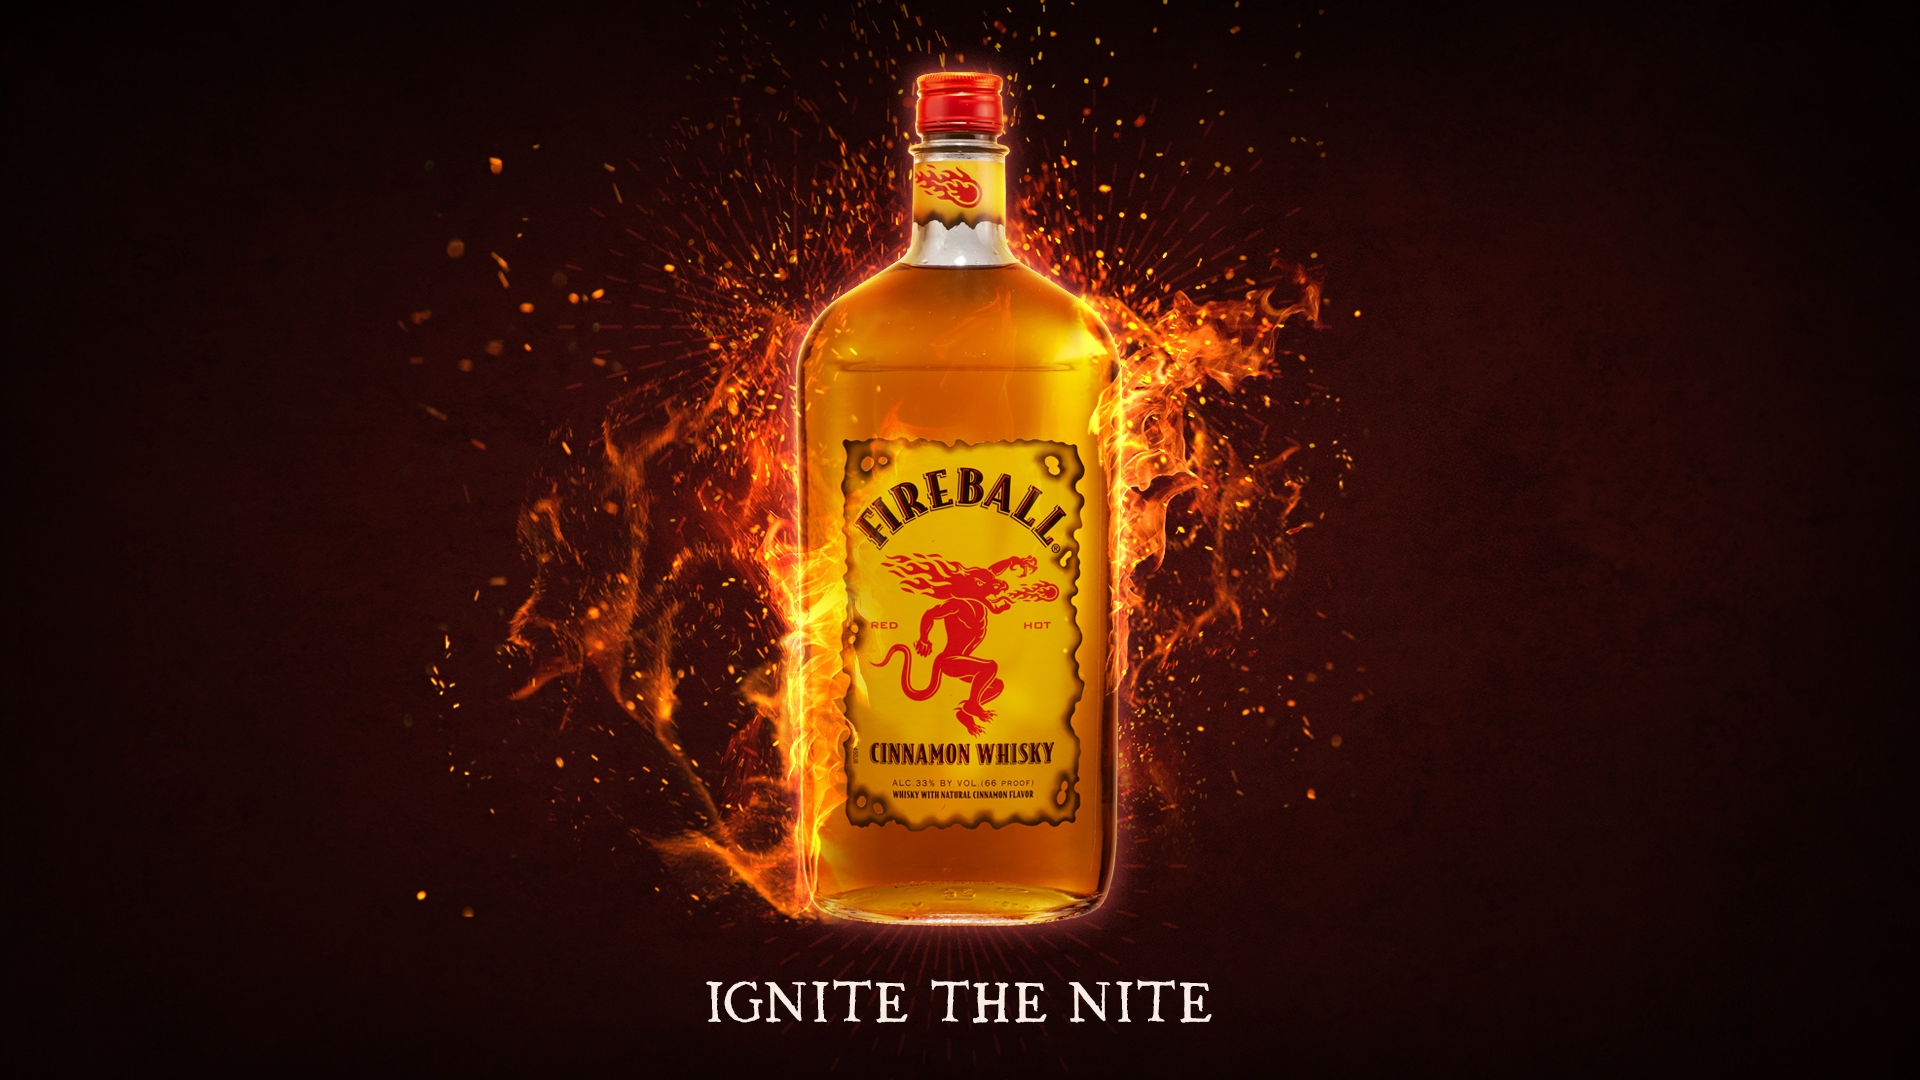 Fireball Cinnamon Whisky Tastes like Heaven Burns like Hell 1920x1080